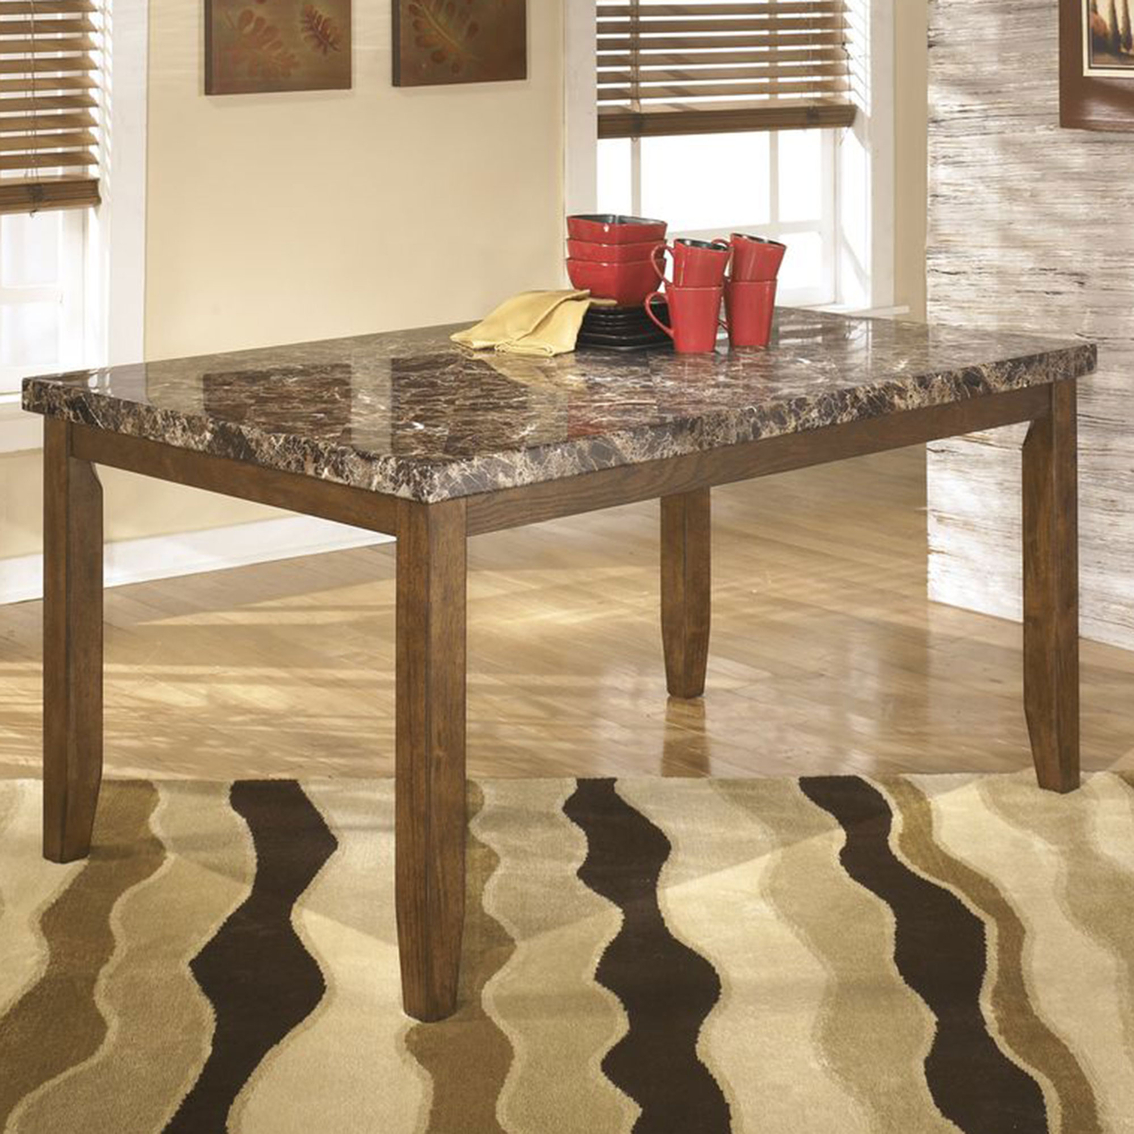 Ashley Lacey Rectangular Dining Table Dining Tables  : 68296881453 from www.shopmyexchange.com size 1134 x 1134 jpeg 875kB